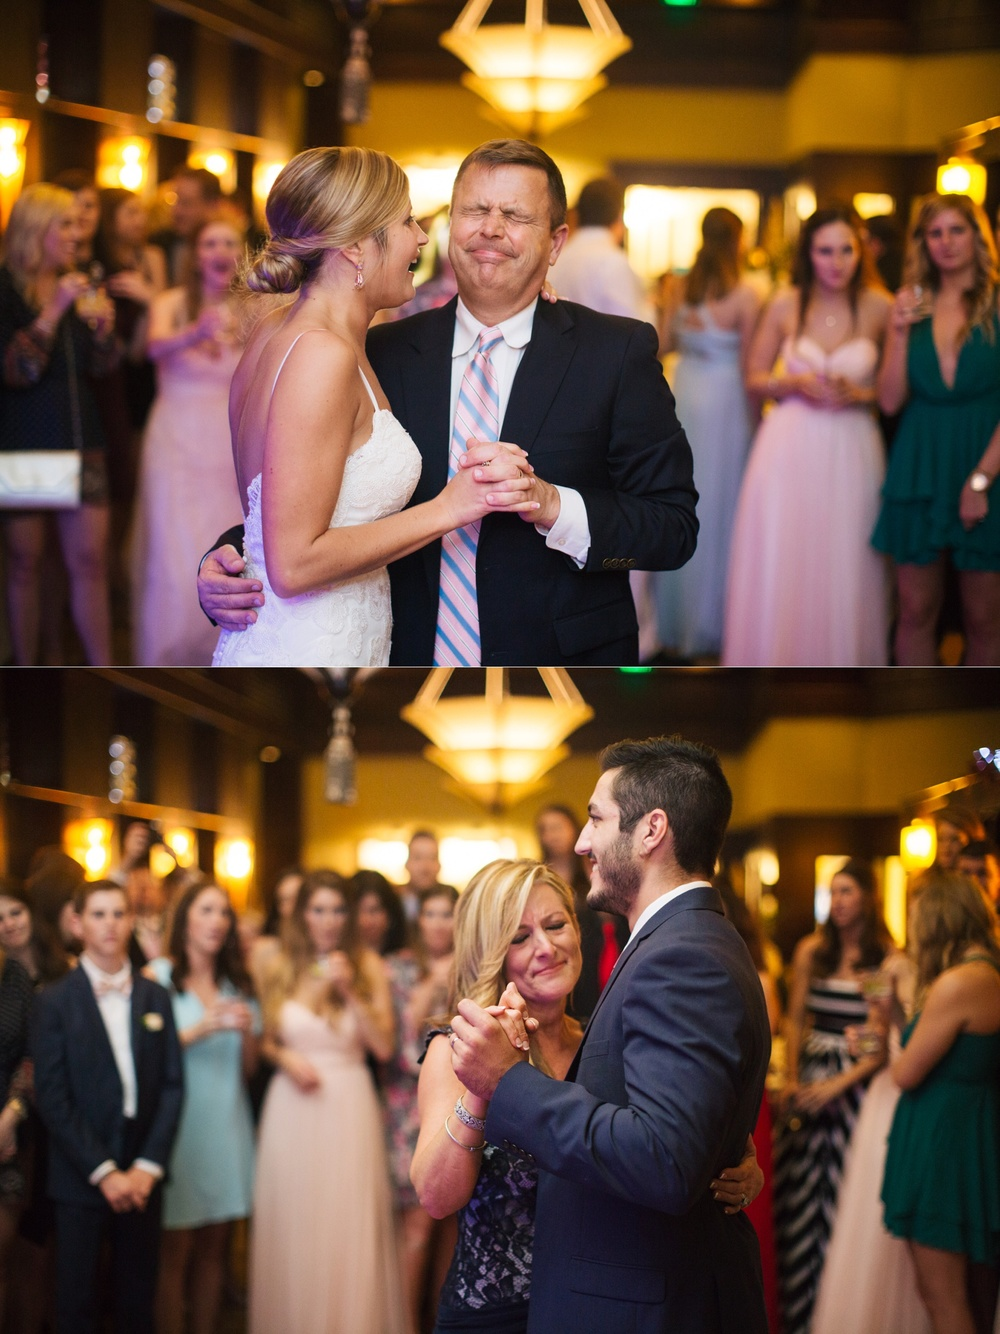 vero beach wedding alec lindsay-35